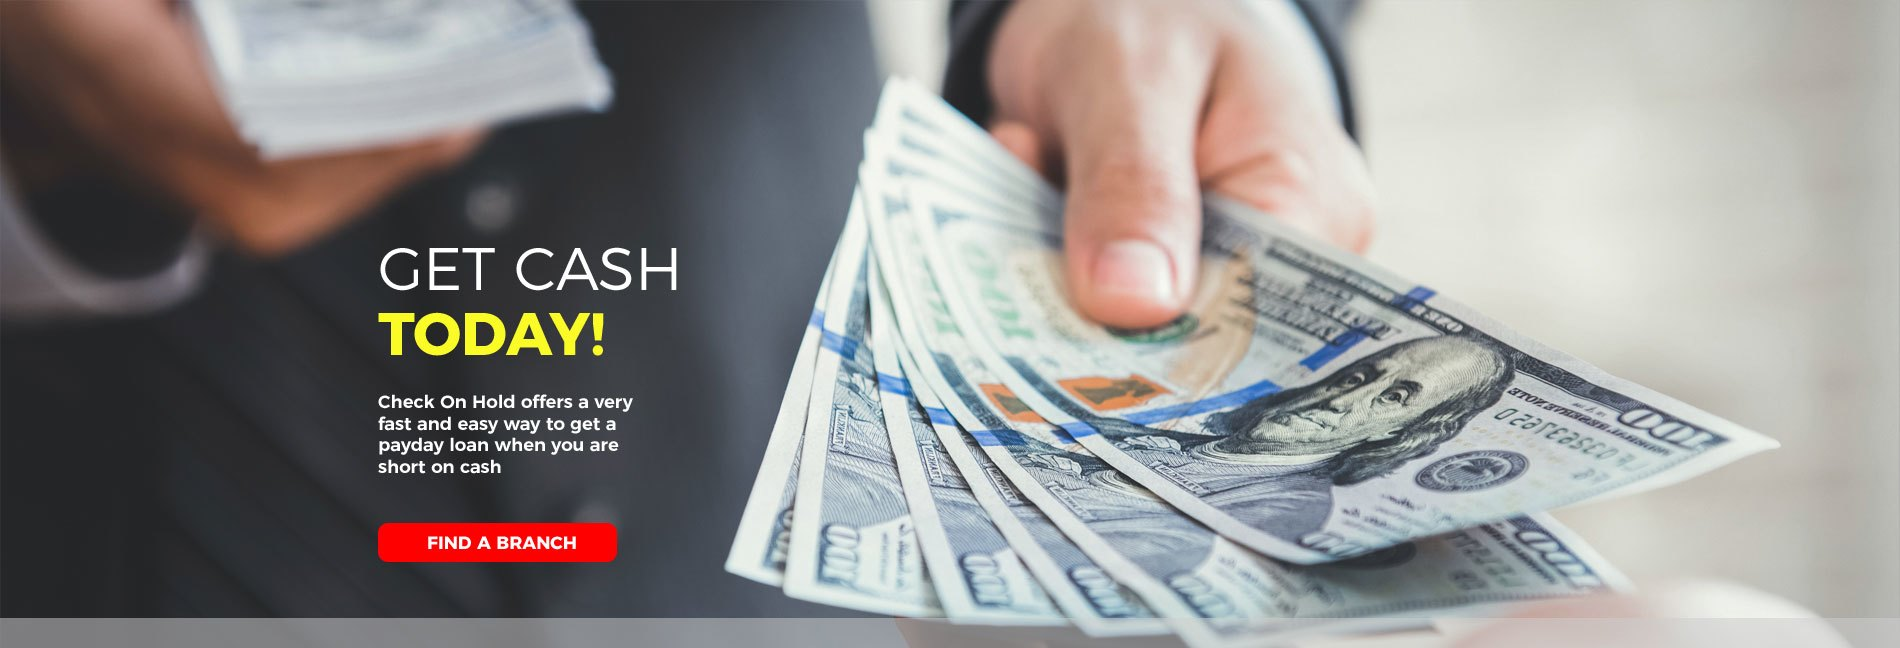 Payday loans same day pay picture 5